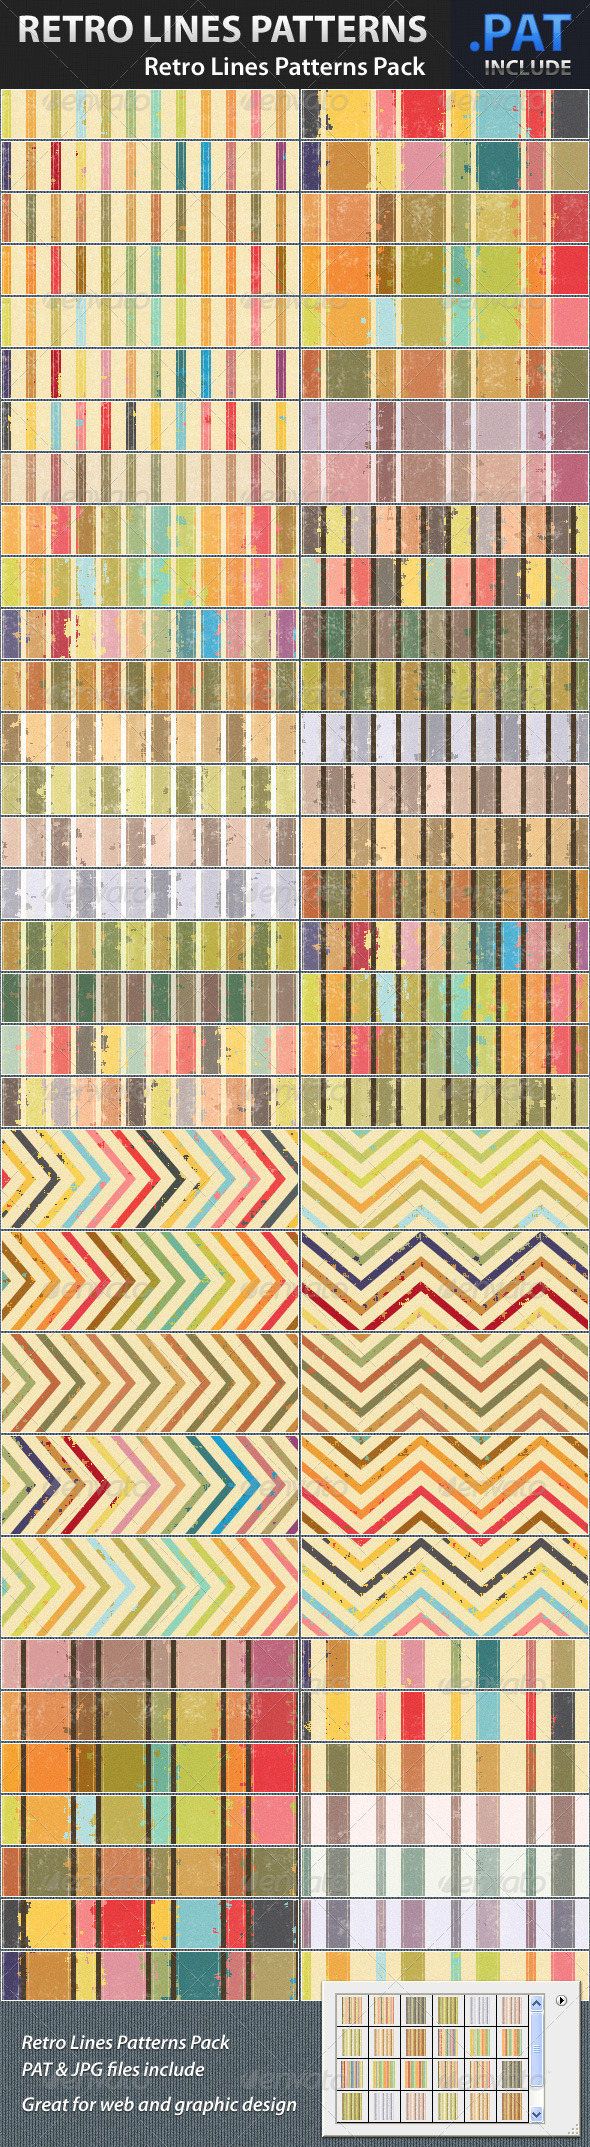 GraphicRiver Retro Lines Patterns Pack 1324408